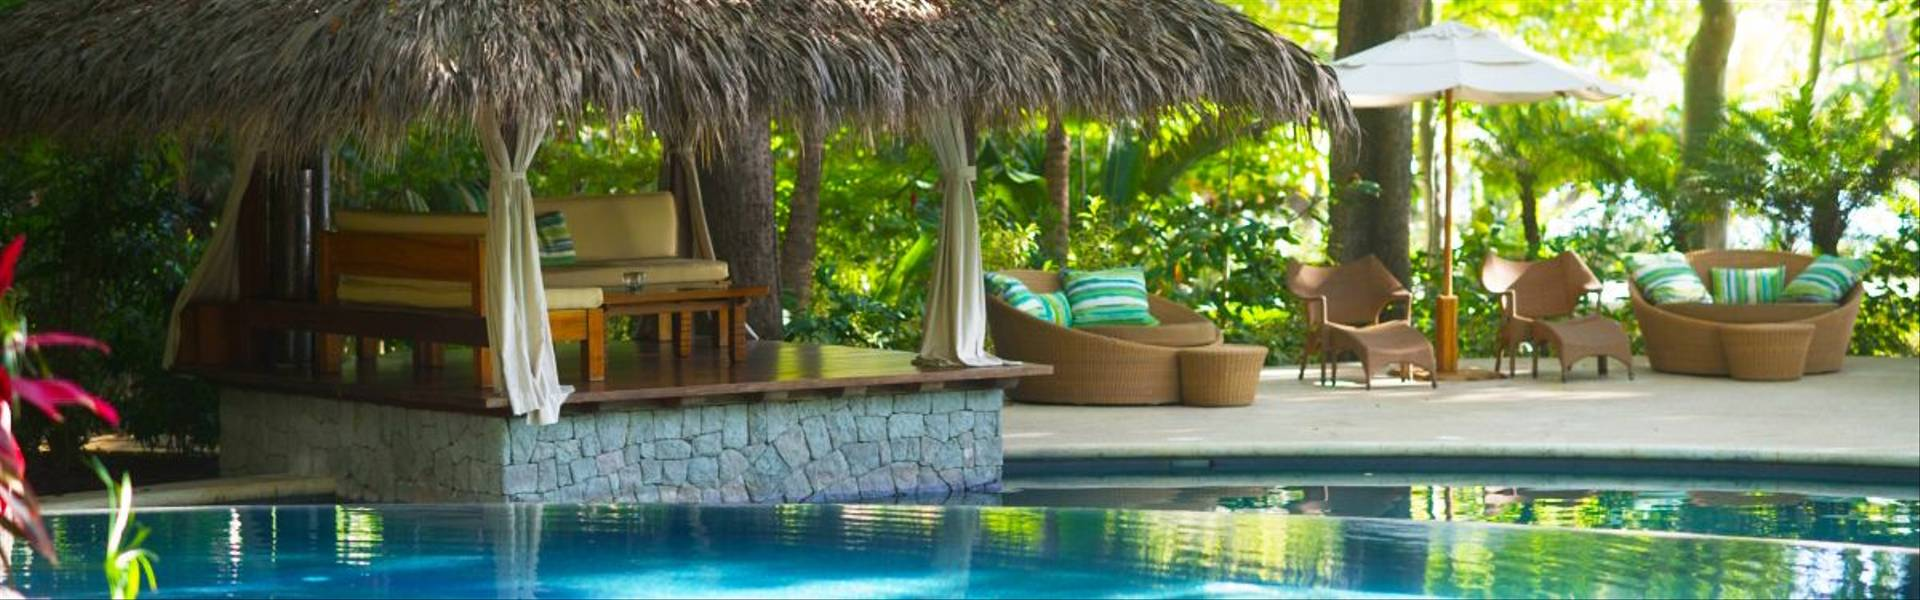 Florblanca-pool-and-palapa.jpg